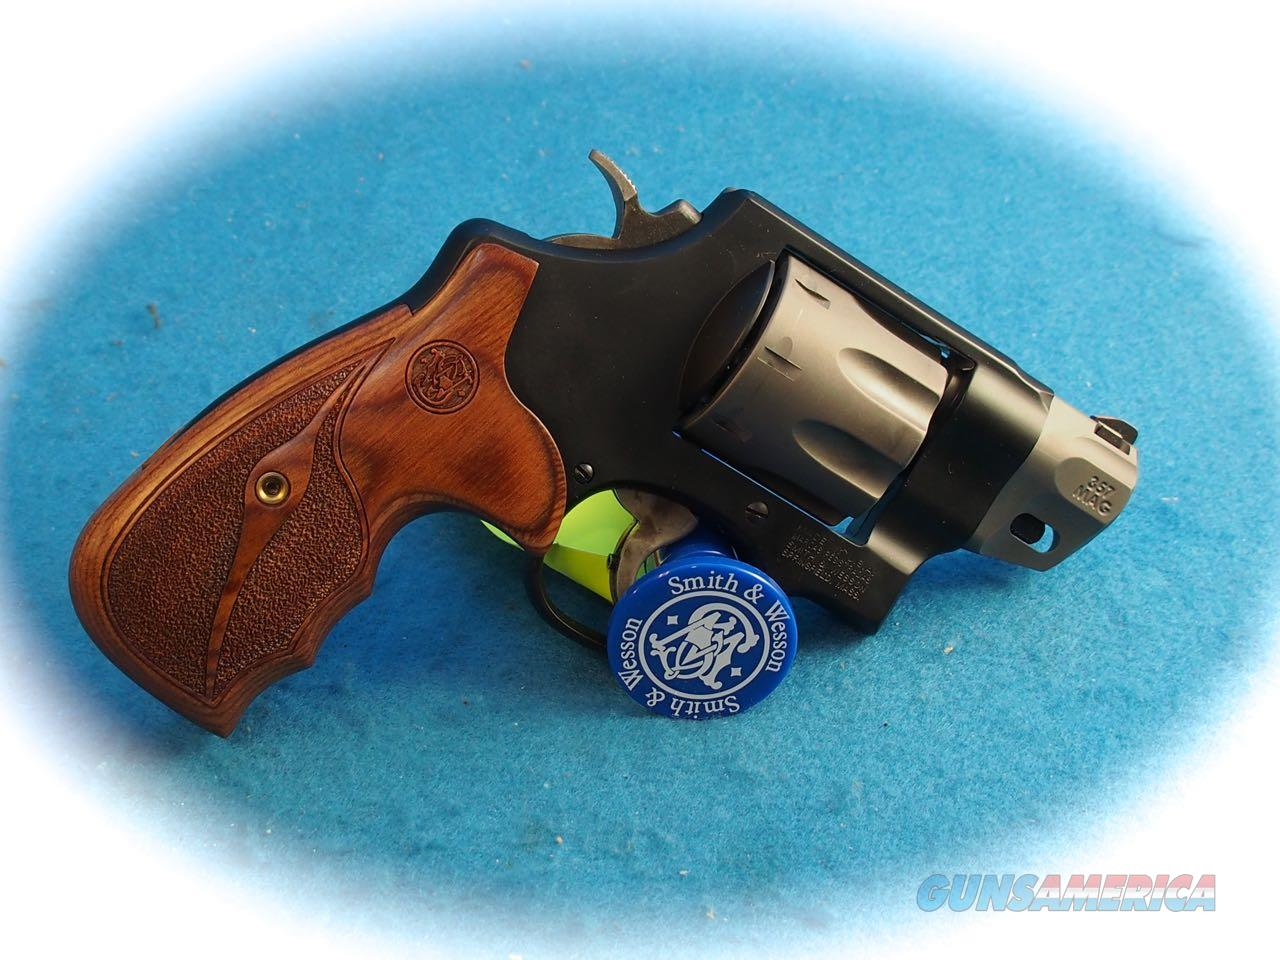 Smith & Wesson Model 327 Performance Center .357 Mag Revolver **New**  Guns > Pistols > Smith & Wesson Revolvers > Performance Center